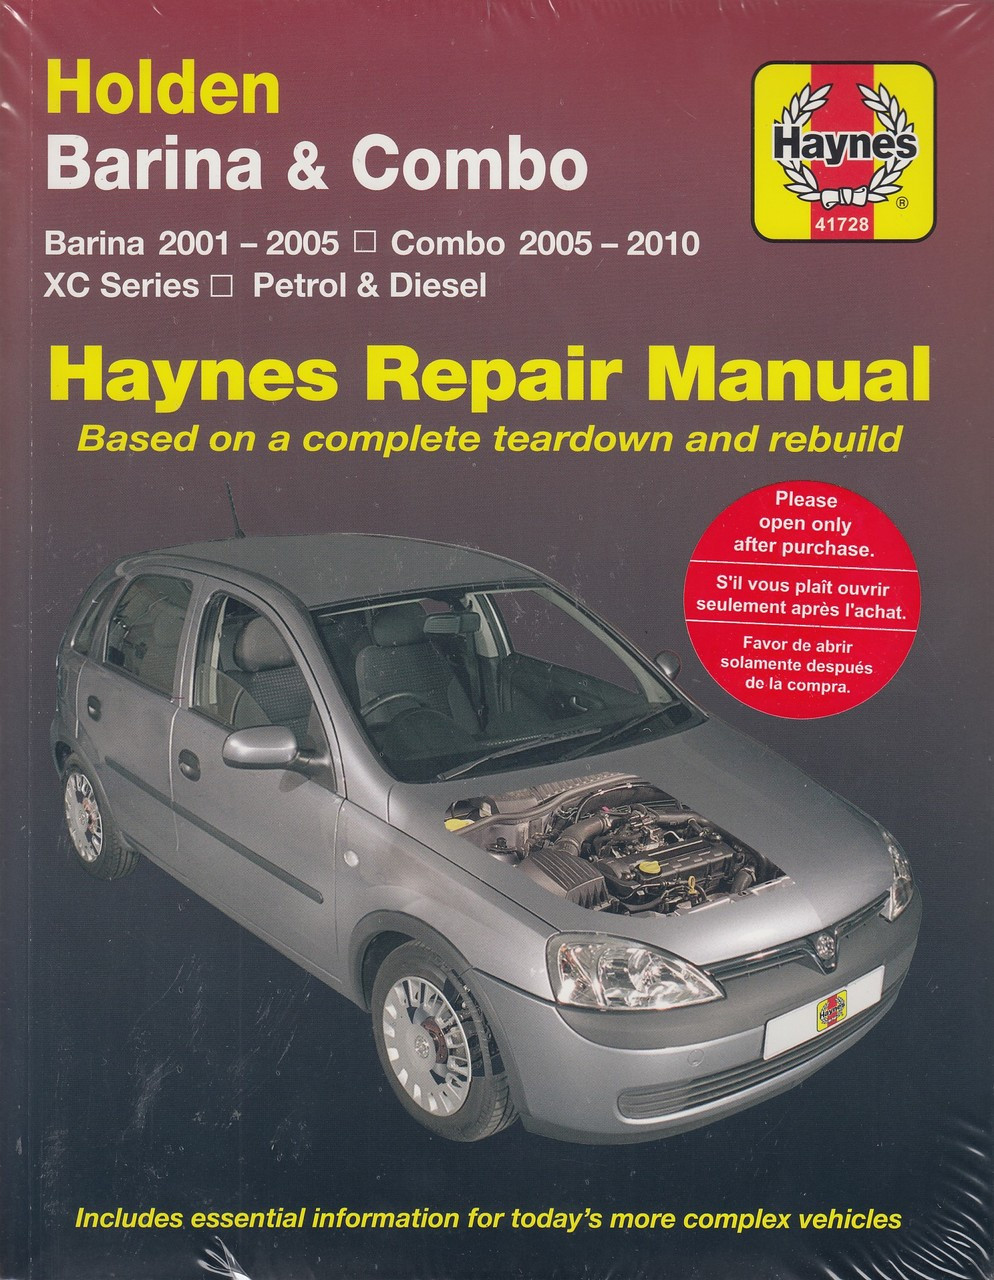 2015 Holden Barina Workshop Manual Toyota Celica A40 1978 Wiring Diagrams Repairmanuals 9781620921982 Array 2008 Gmc Acadia User Rh Sportingpenistone Org Uk